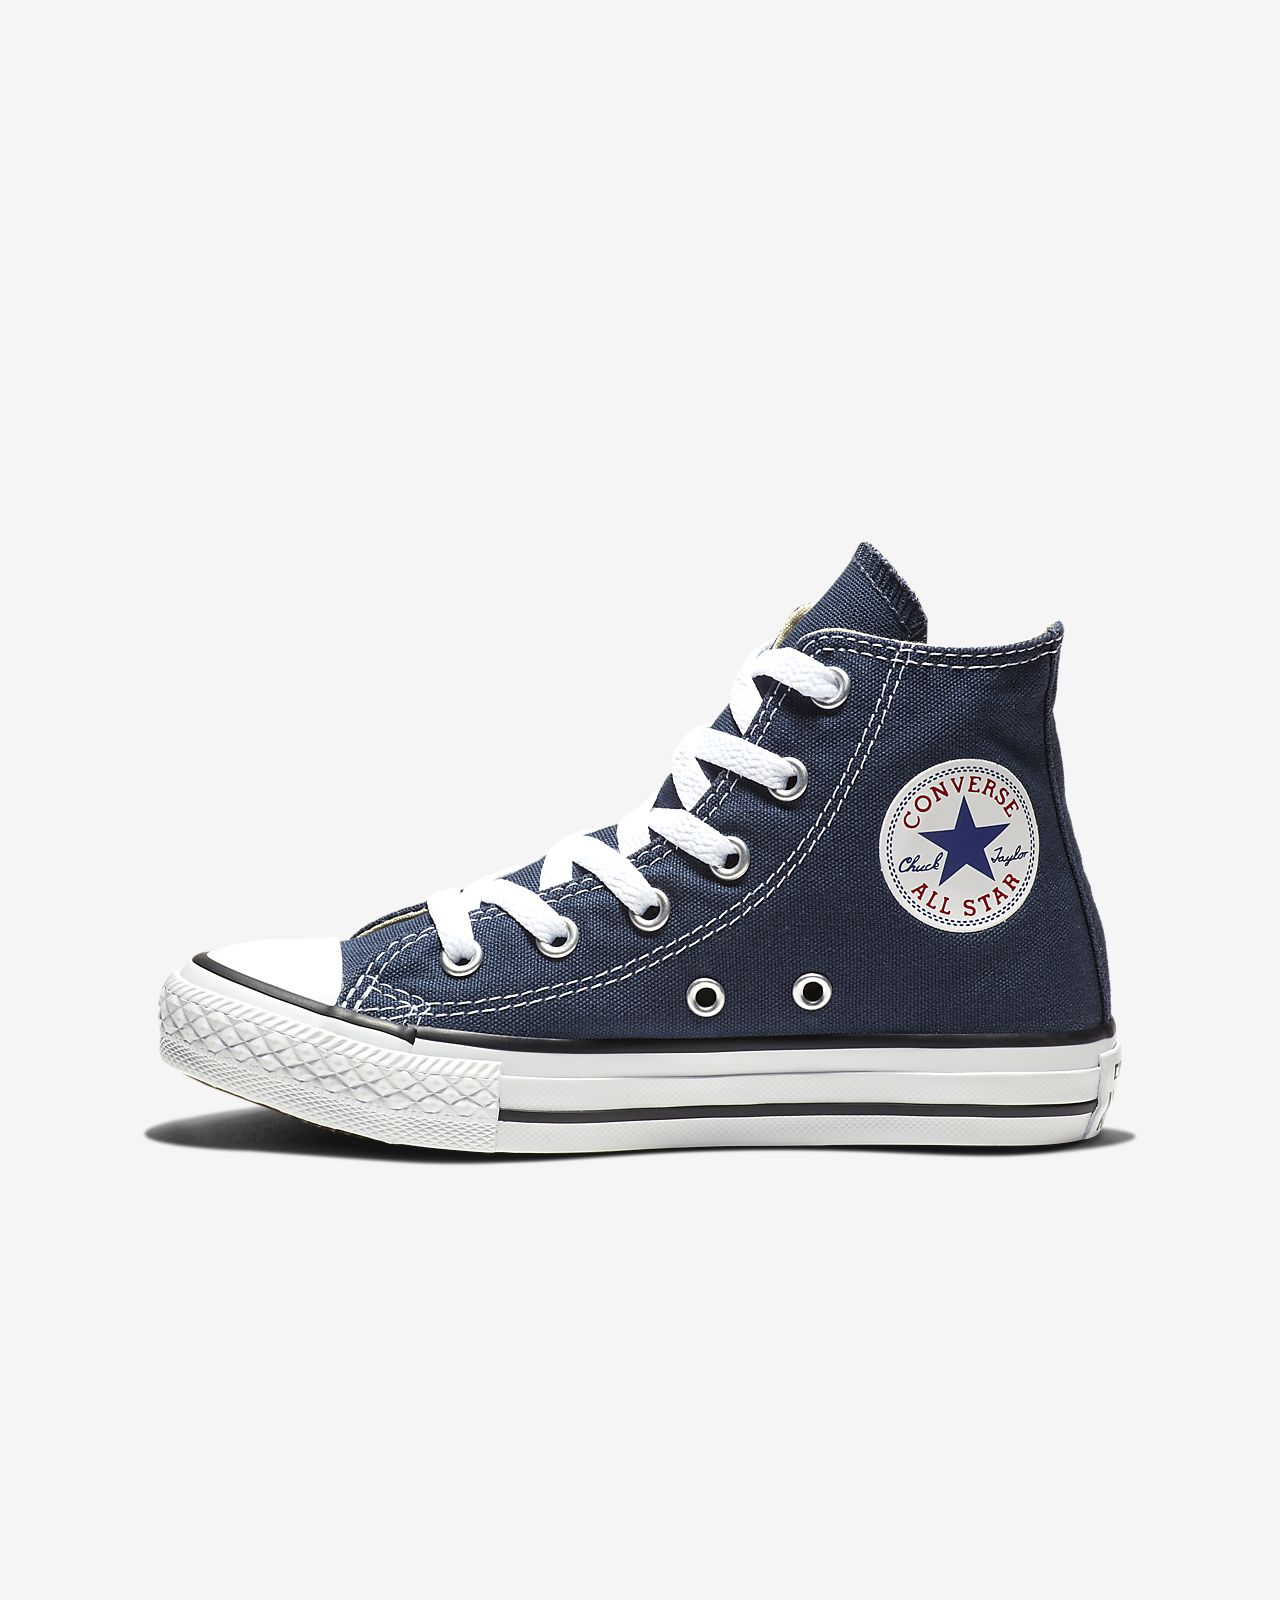 70f8b5f24f8f Converse Chuck Taylor All Star High Top (10.5c-3y) Little Kids  Shoe ...